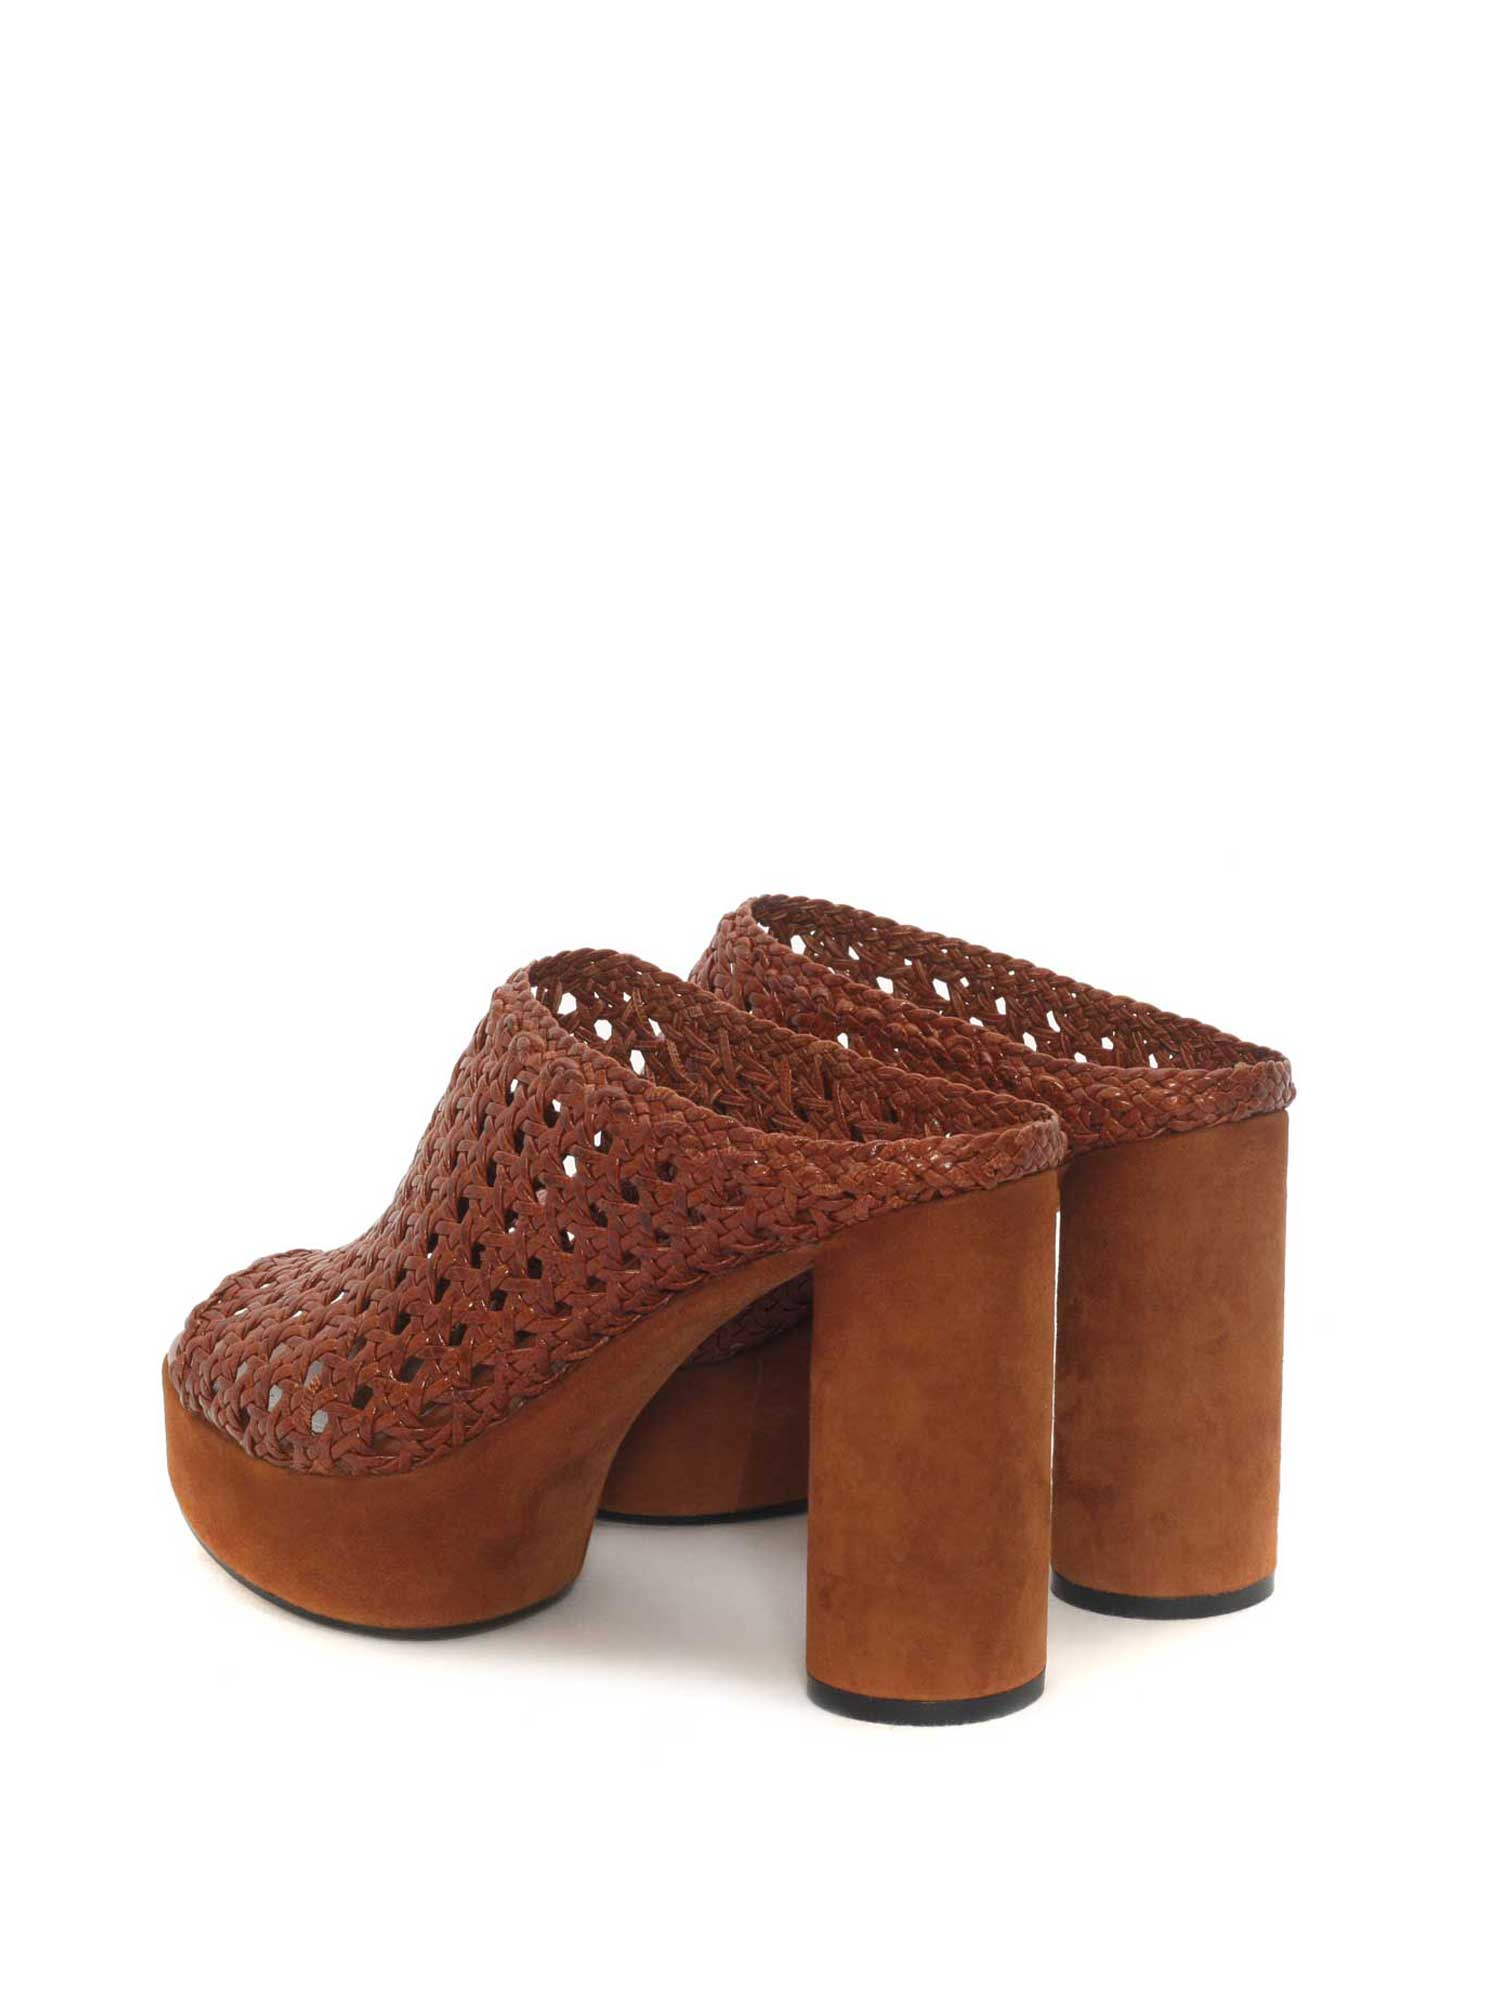 TOFFEE LEATHER HEEL SANDAL